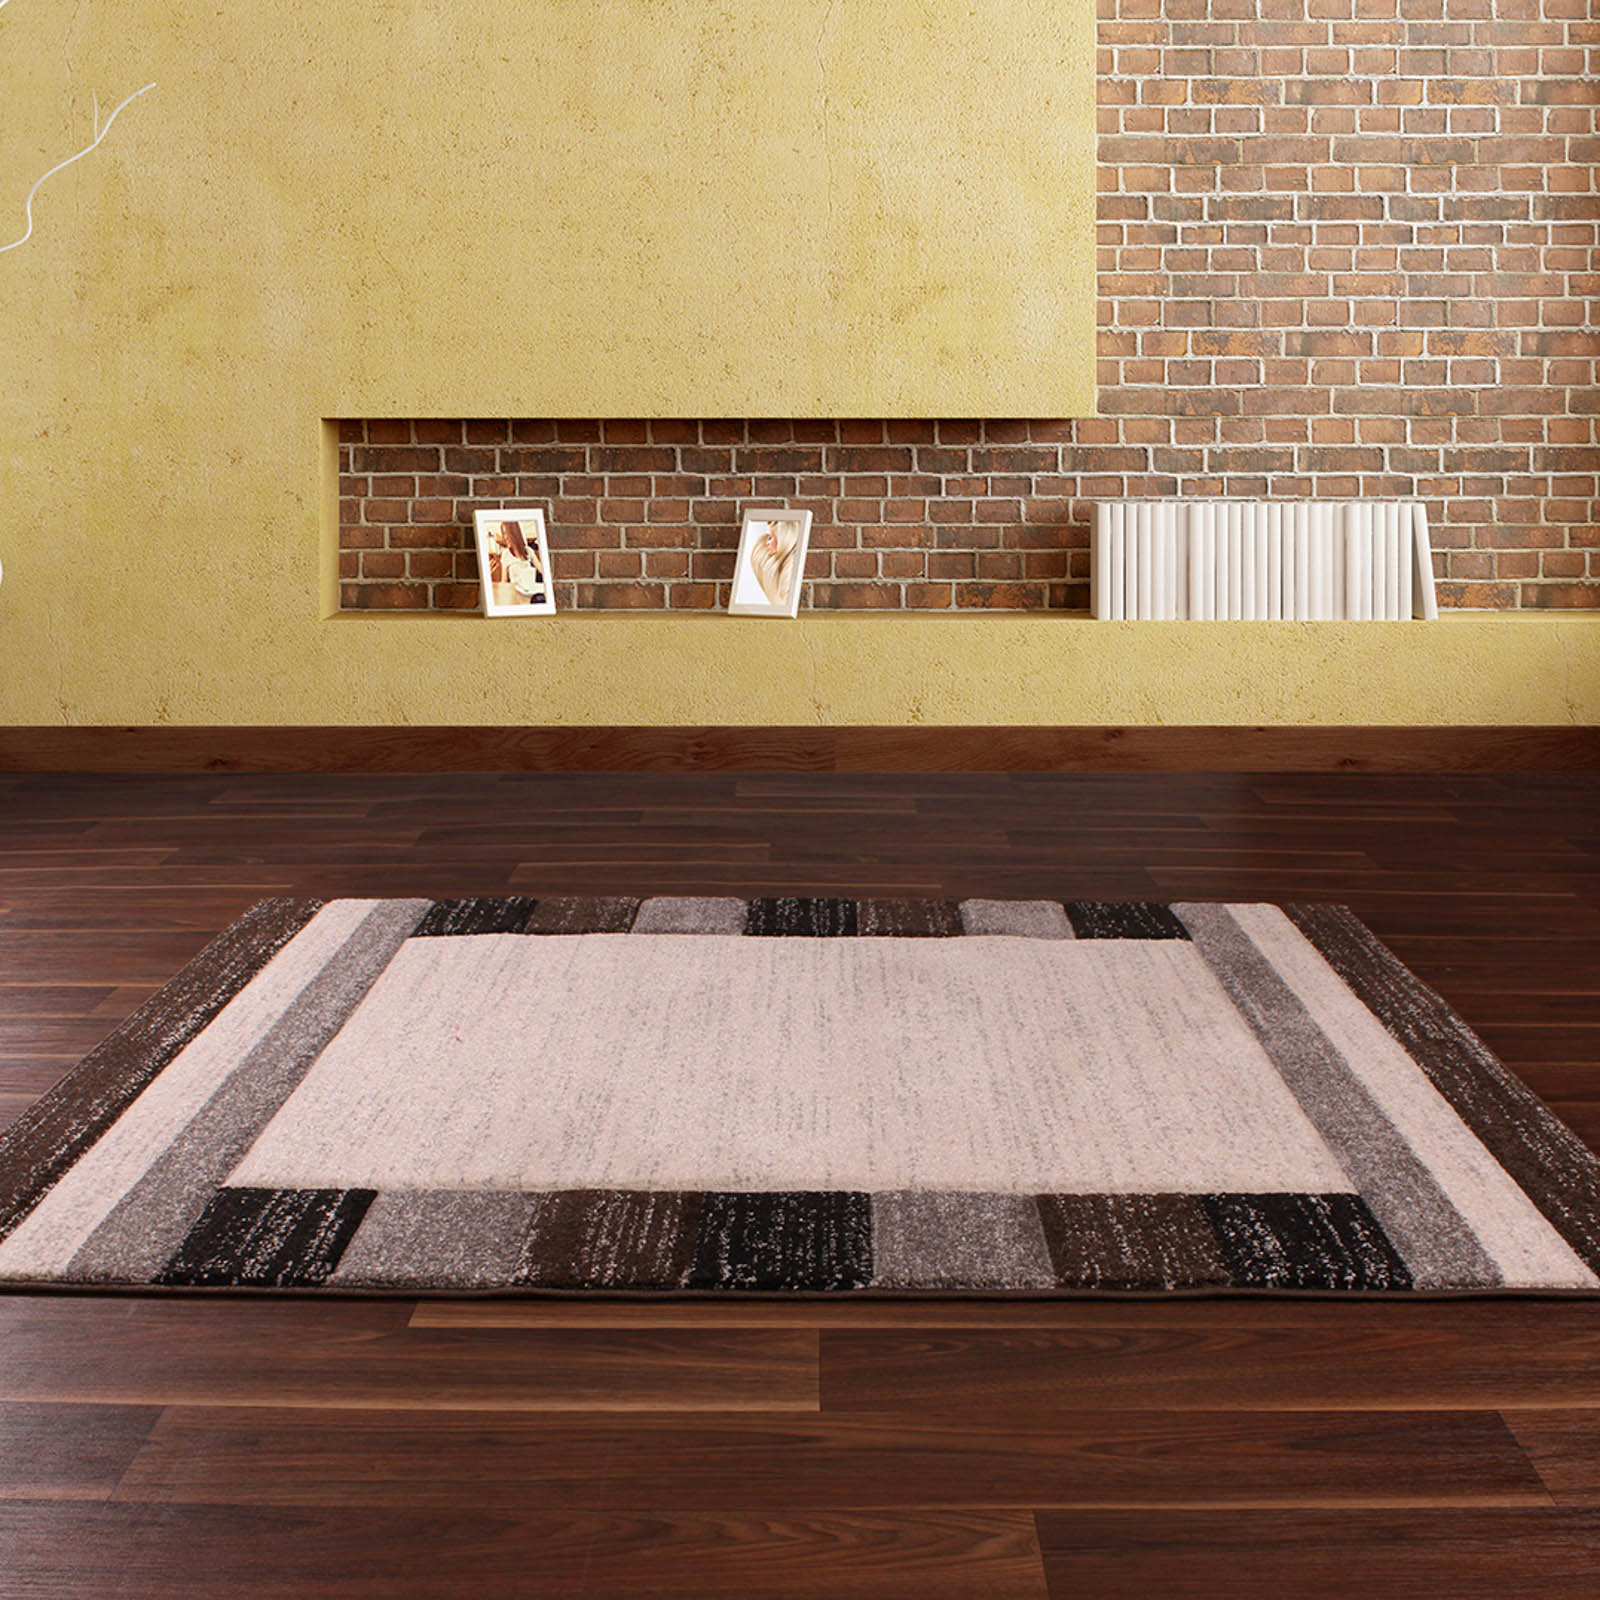 Bali Rugs 871 in Ivory